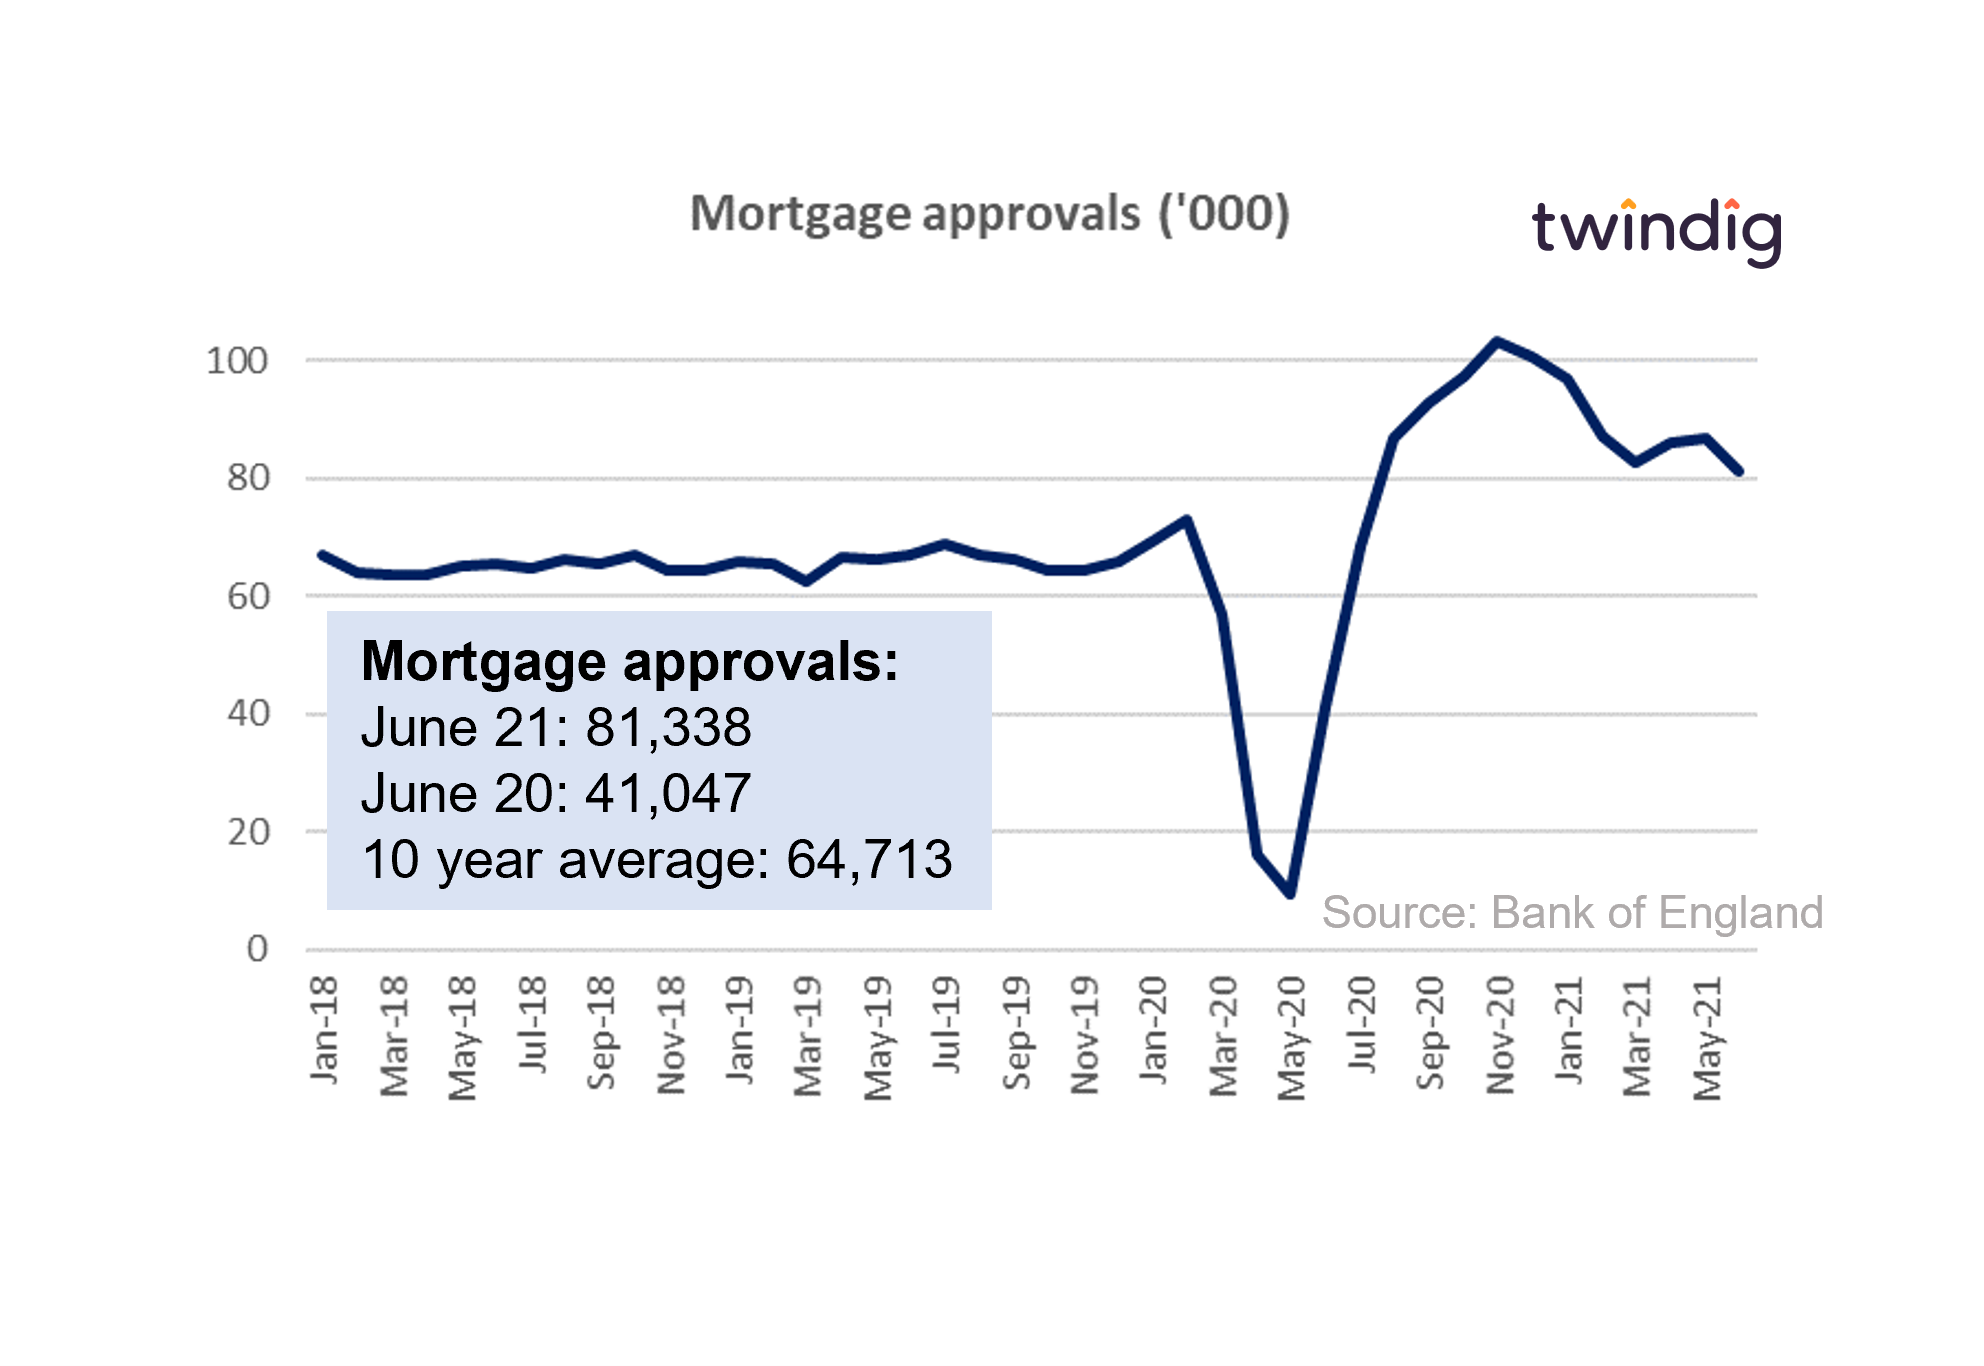 Uk mortgage approvals chart graph January 2018 to June 2021 twindig anthony codling